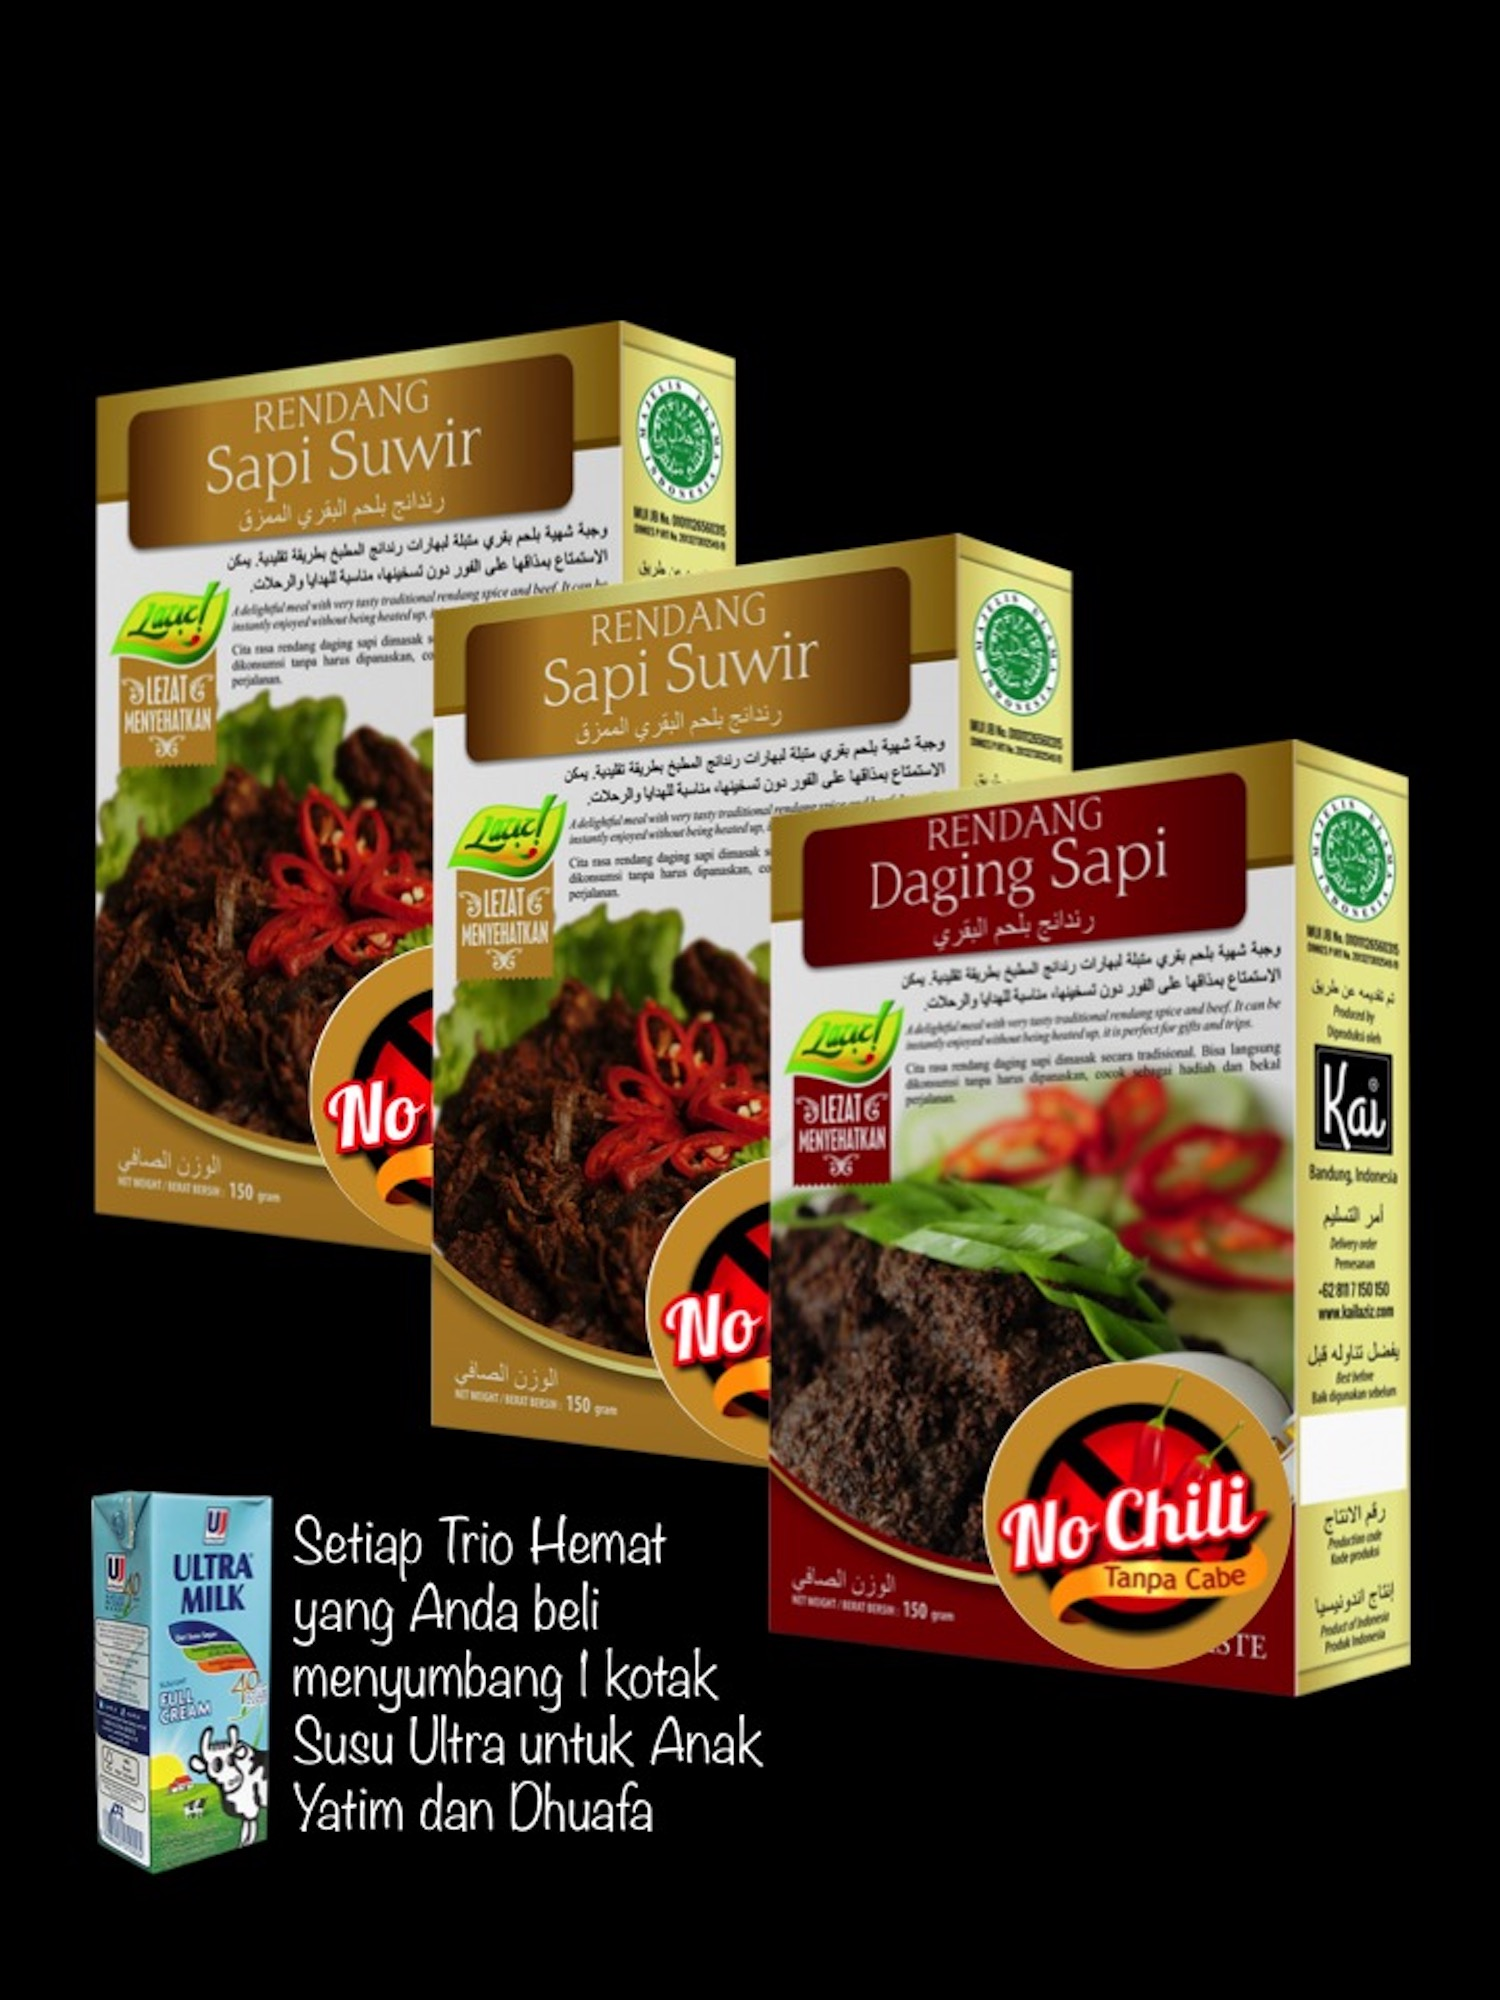 KID MEALS 2 RENDANG SAPI SUWIR NO CHILI 1 RENDANG DAGING SAPI NO CHILI KAI FOOD 450GR